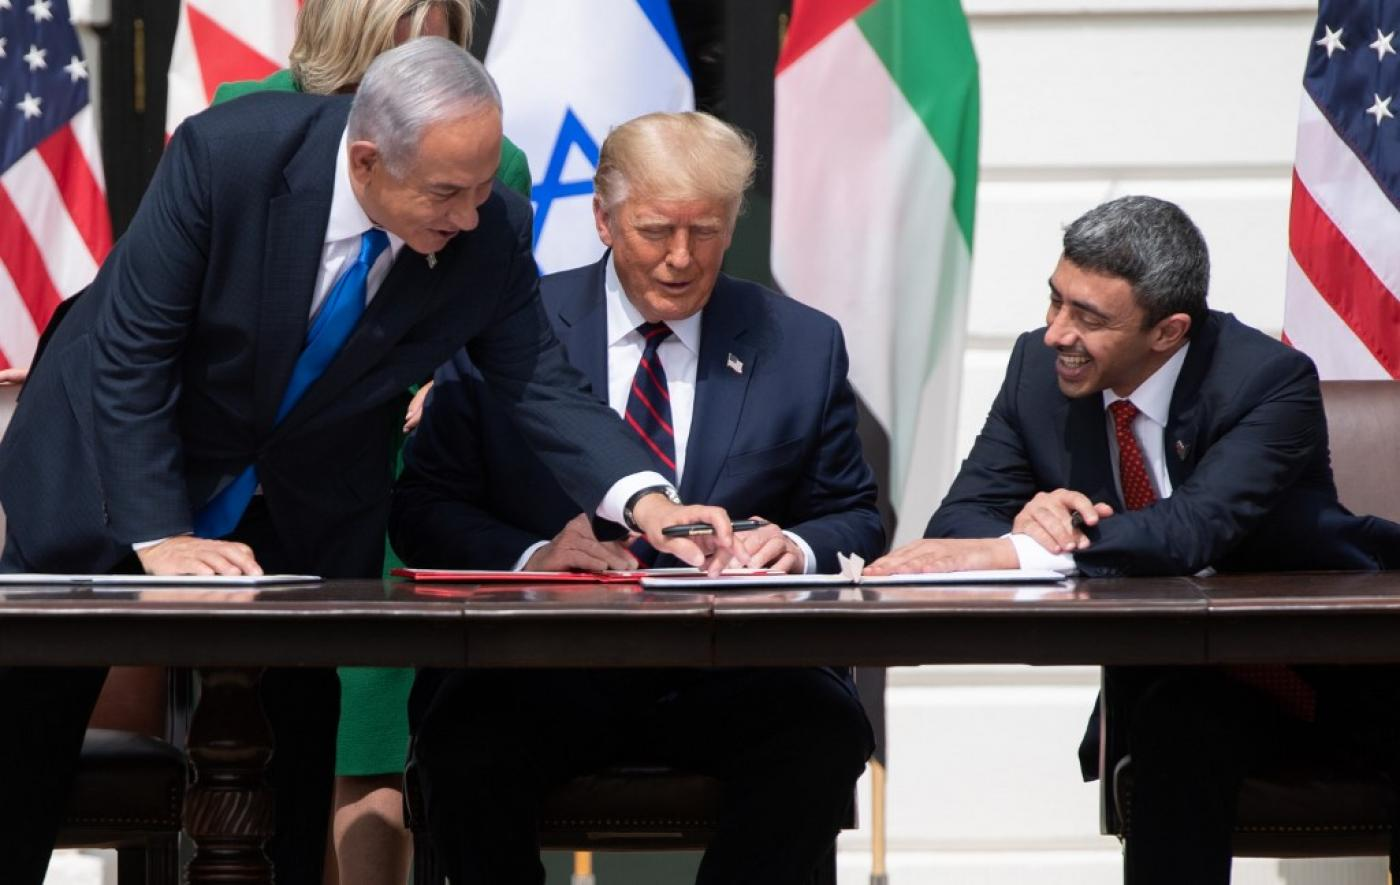 Israel and the UAE working together to eliminate UNRWA